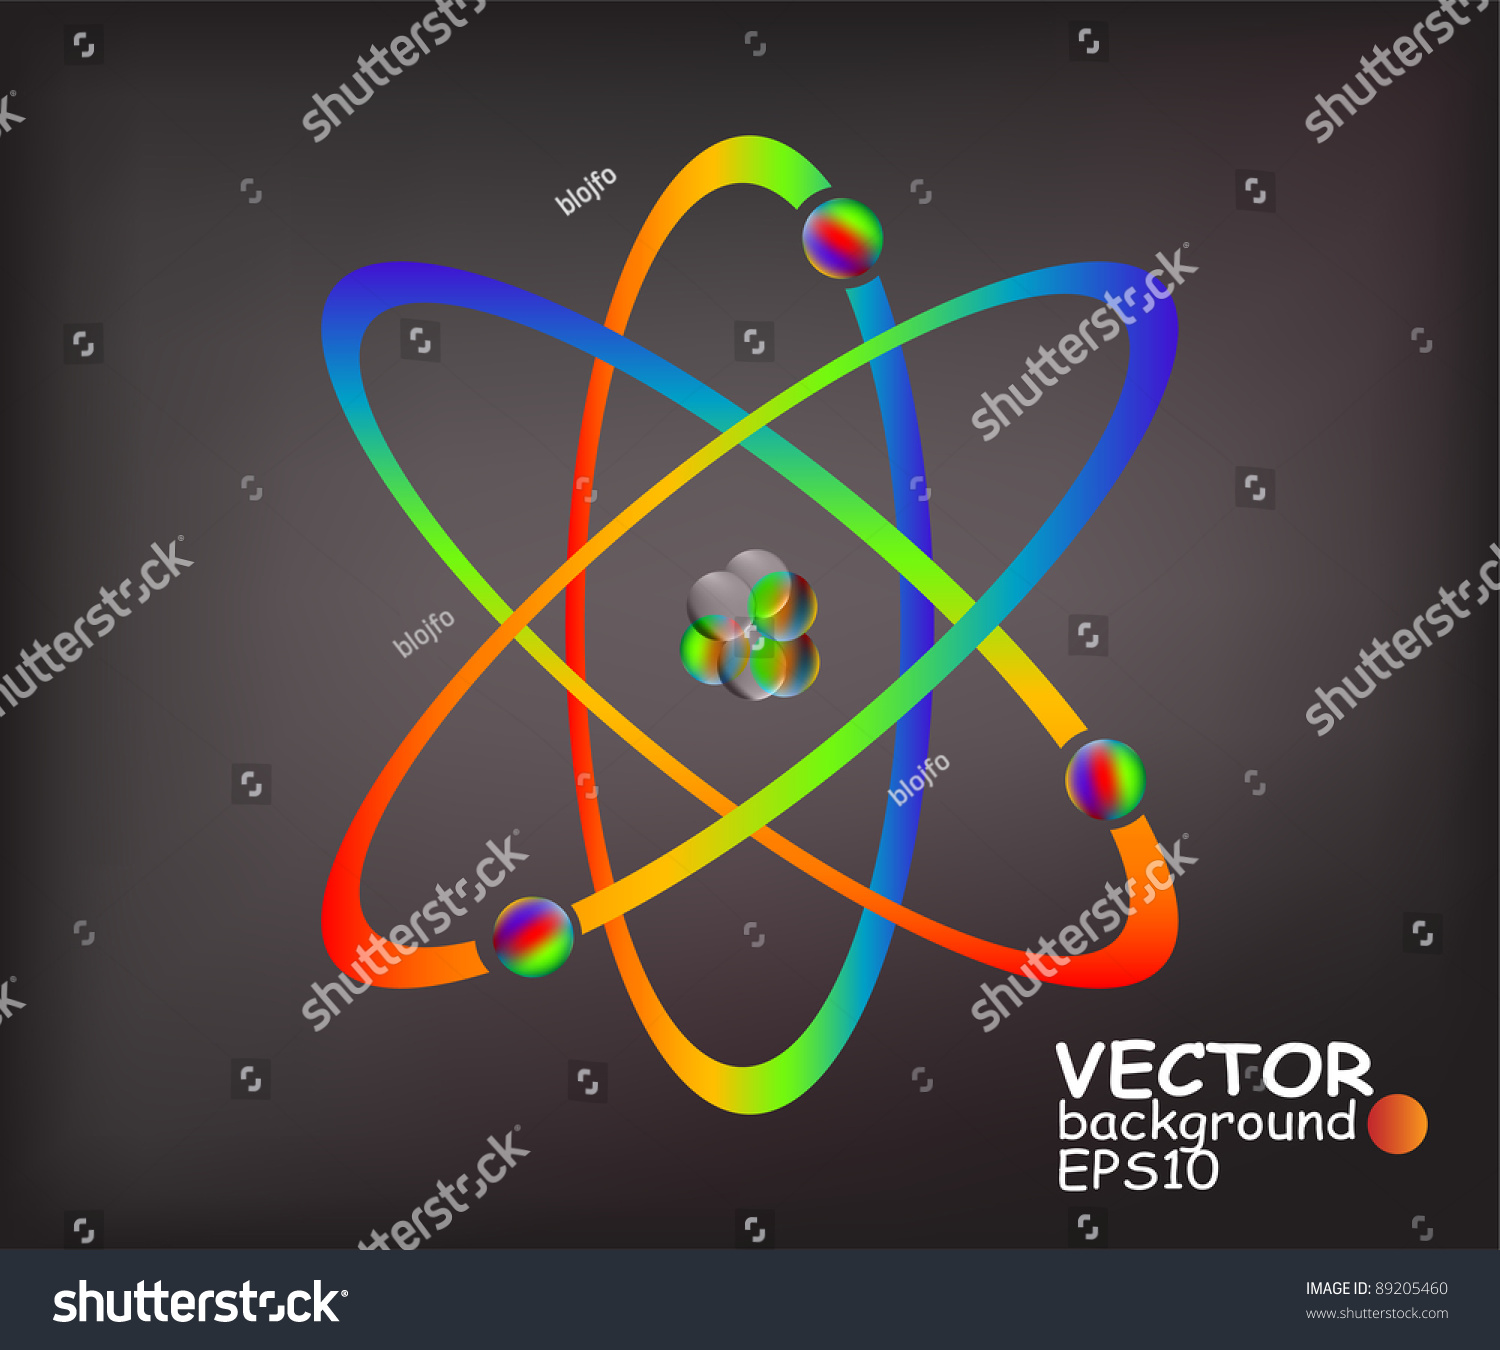 Simplified Model Of An Atom With Protons Neutrons And Electrons Stock Vector Illustration